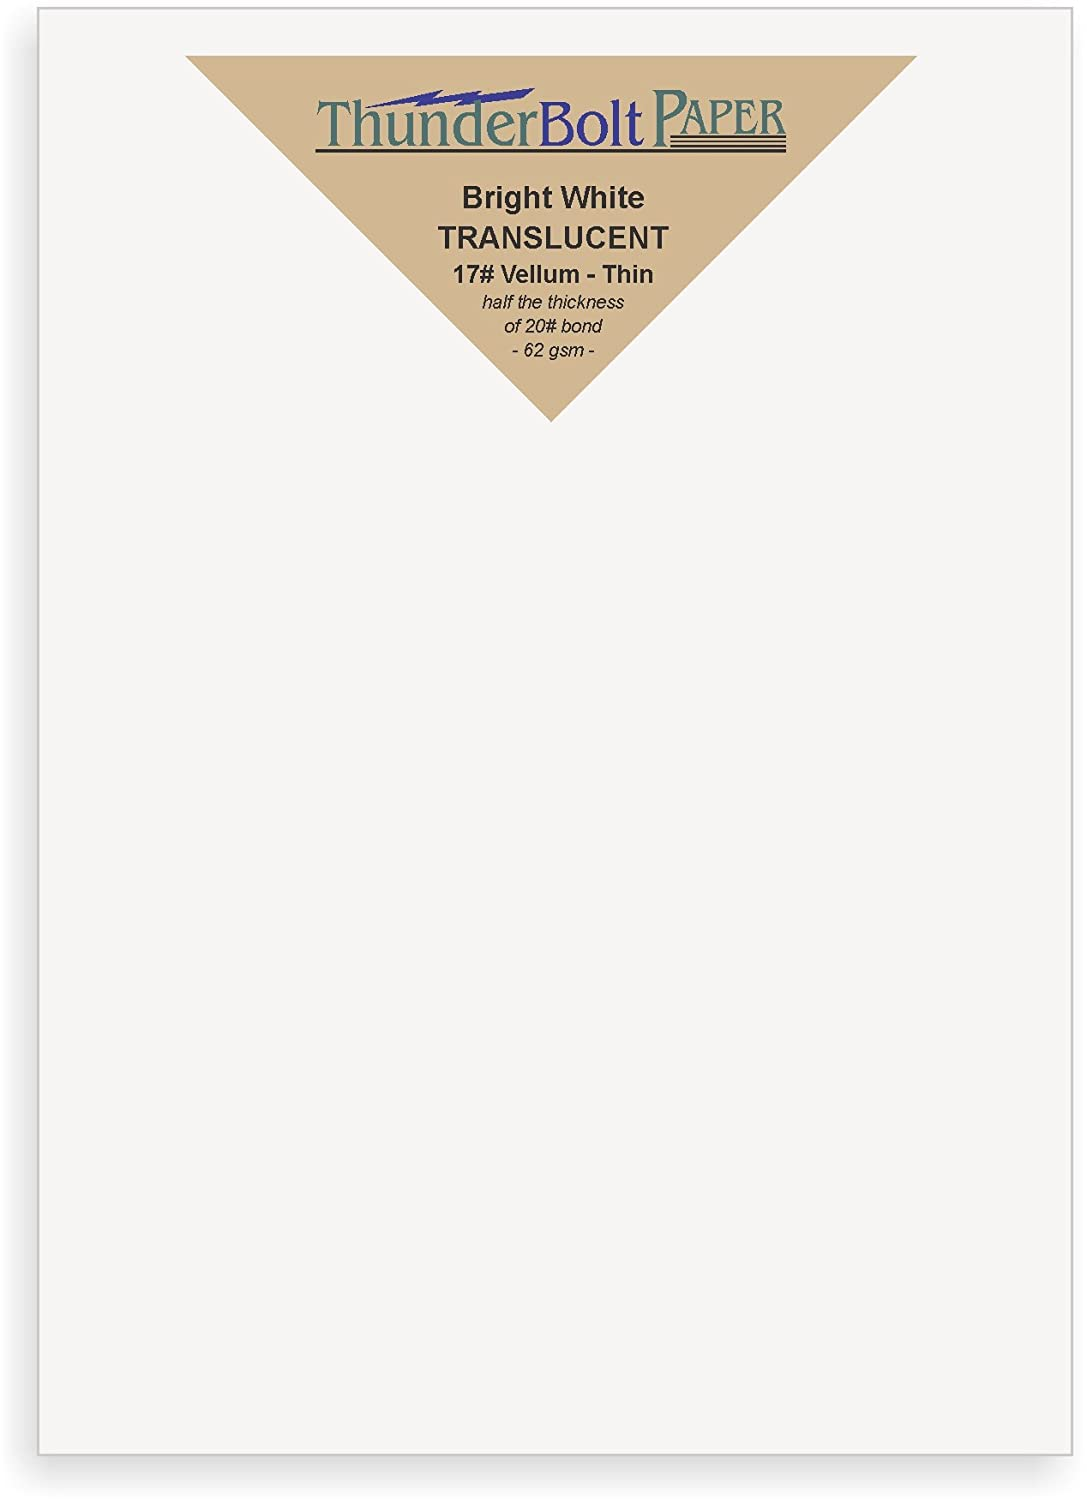 100 Bright White Translucent 17# Thin Sheets - 5' X 7' (5X7 Inches) Photo|Card|Frame Size - 17 lb/pound Light Weight Fine Quality Paper - Tracing, Fun or Formal Use - Not a Clear Transparent TBP